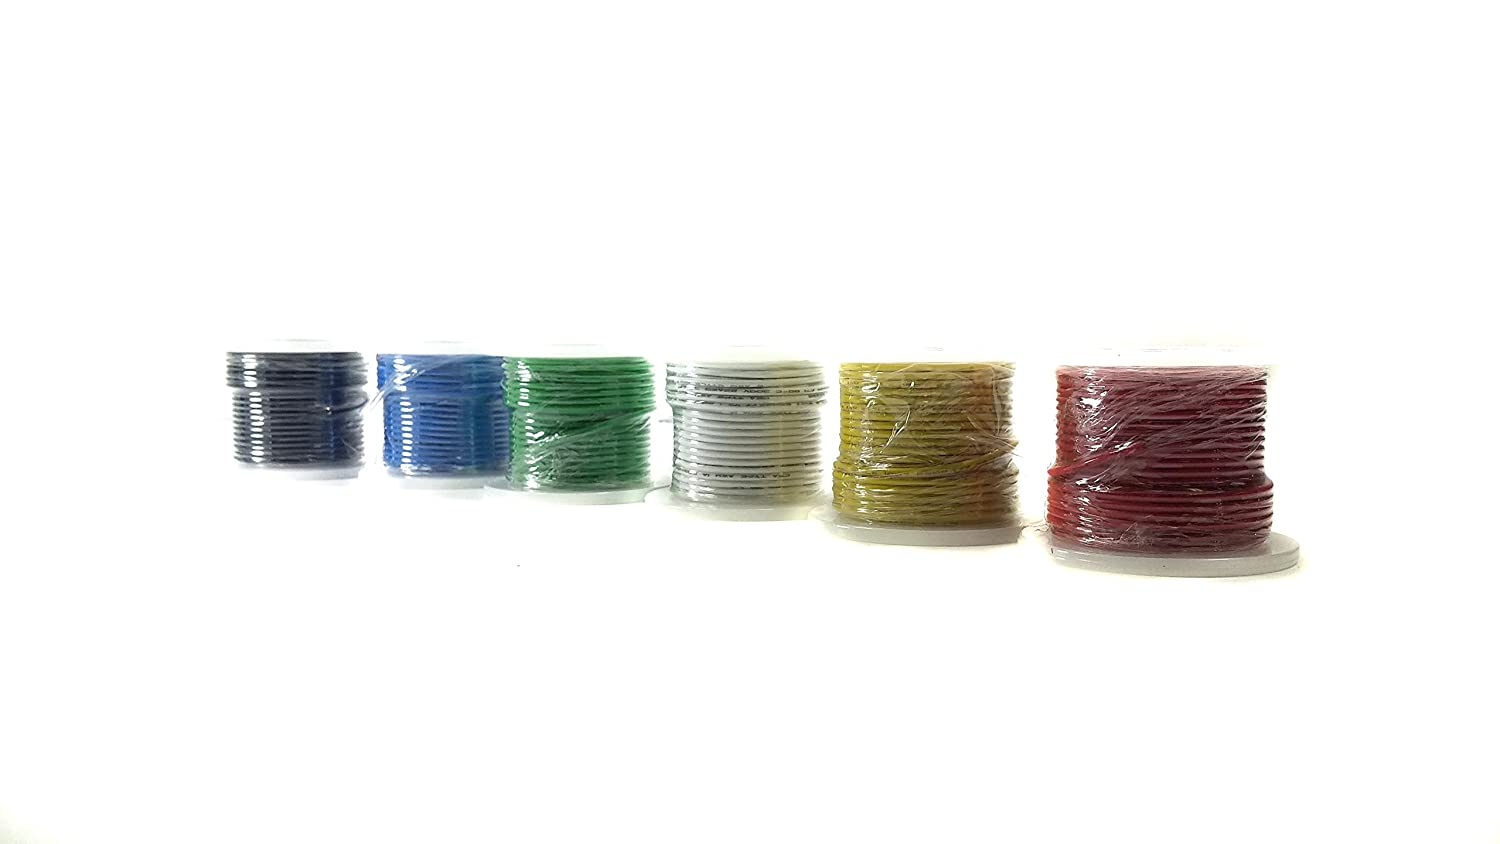 Hook-Up Wire Kit 22G Stranded Wire, 100 ft. Spools - - Amazon.com